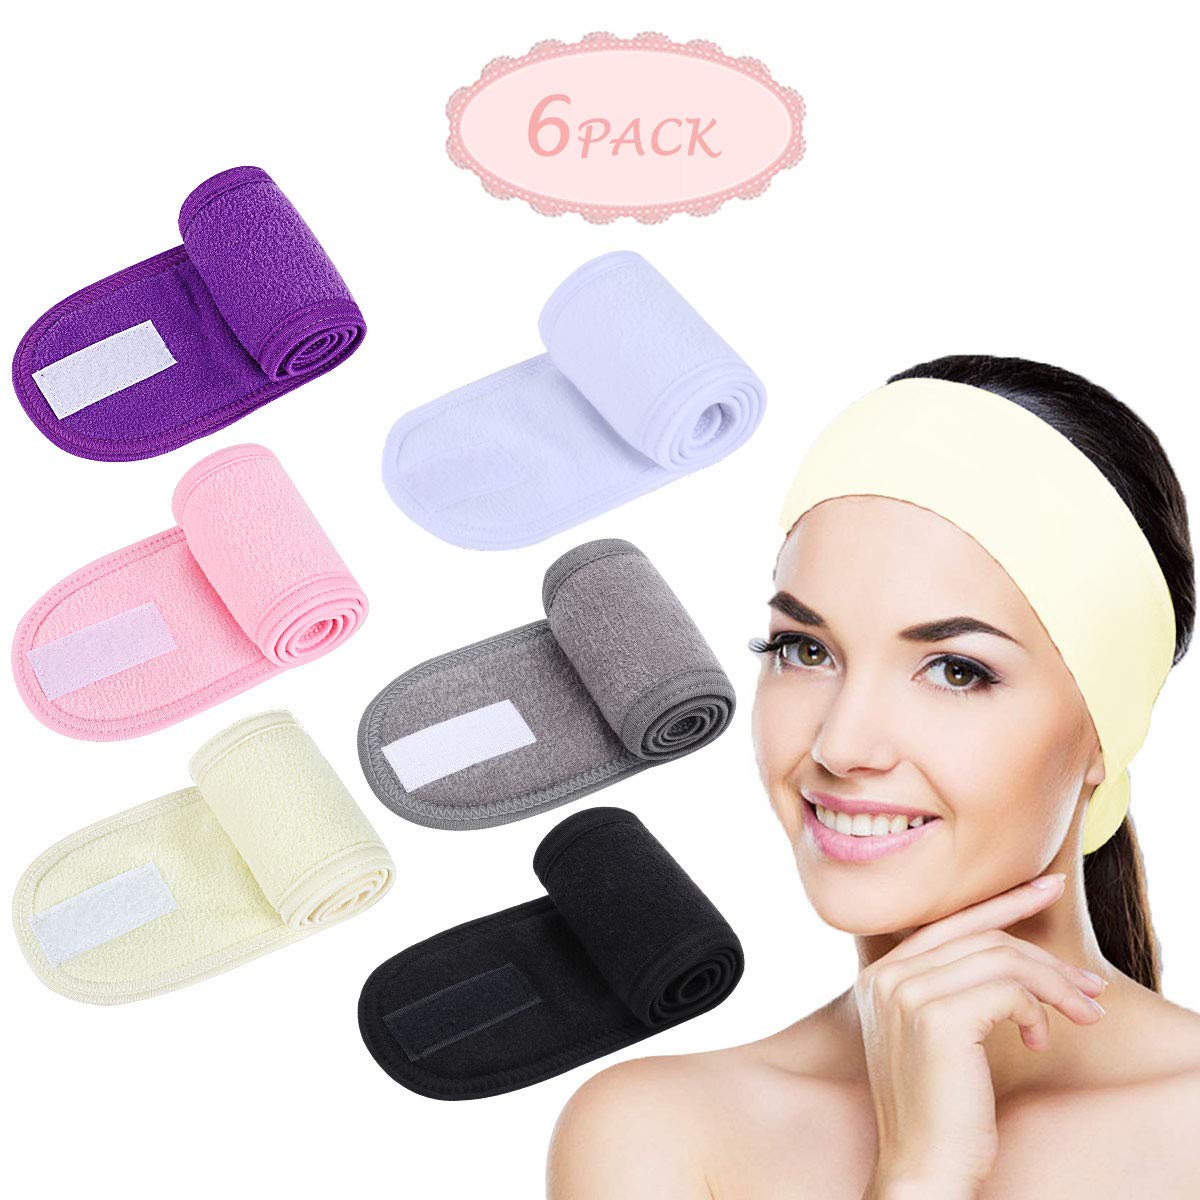 Facial Spa Headband - 2 Pcs Makeup Shower Bath Wrap Sport Headband Terry Cloth Adjustable Stretch Towel with Magic Tape